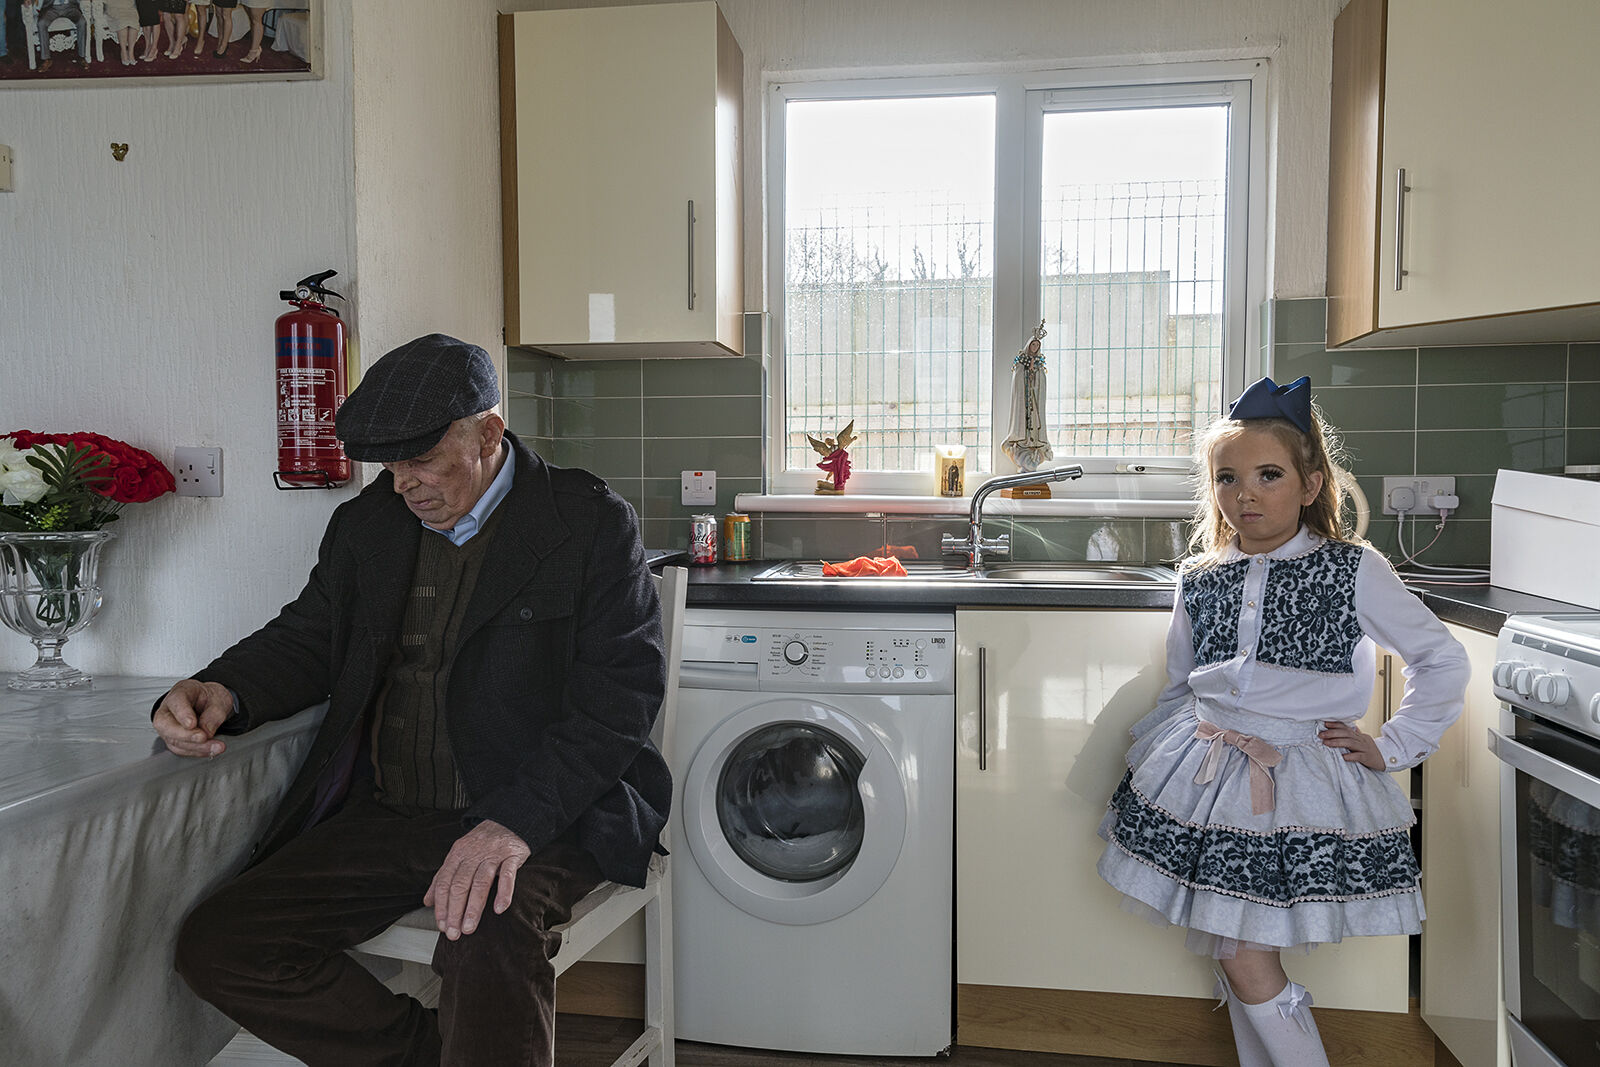 Jack and Granddaughter Channell, Galway, Ireland 2021